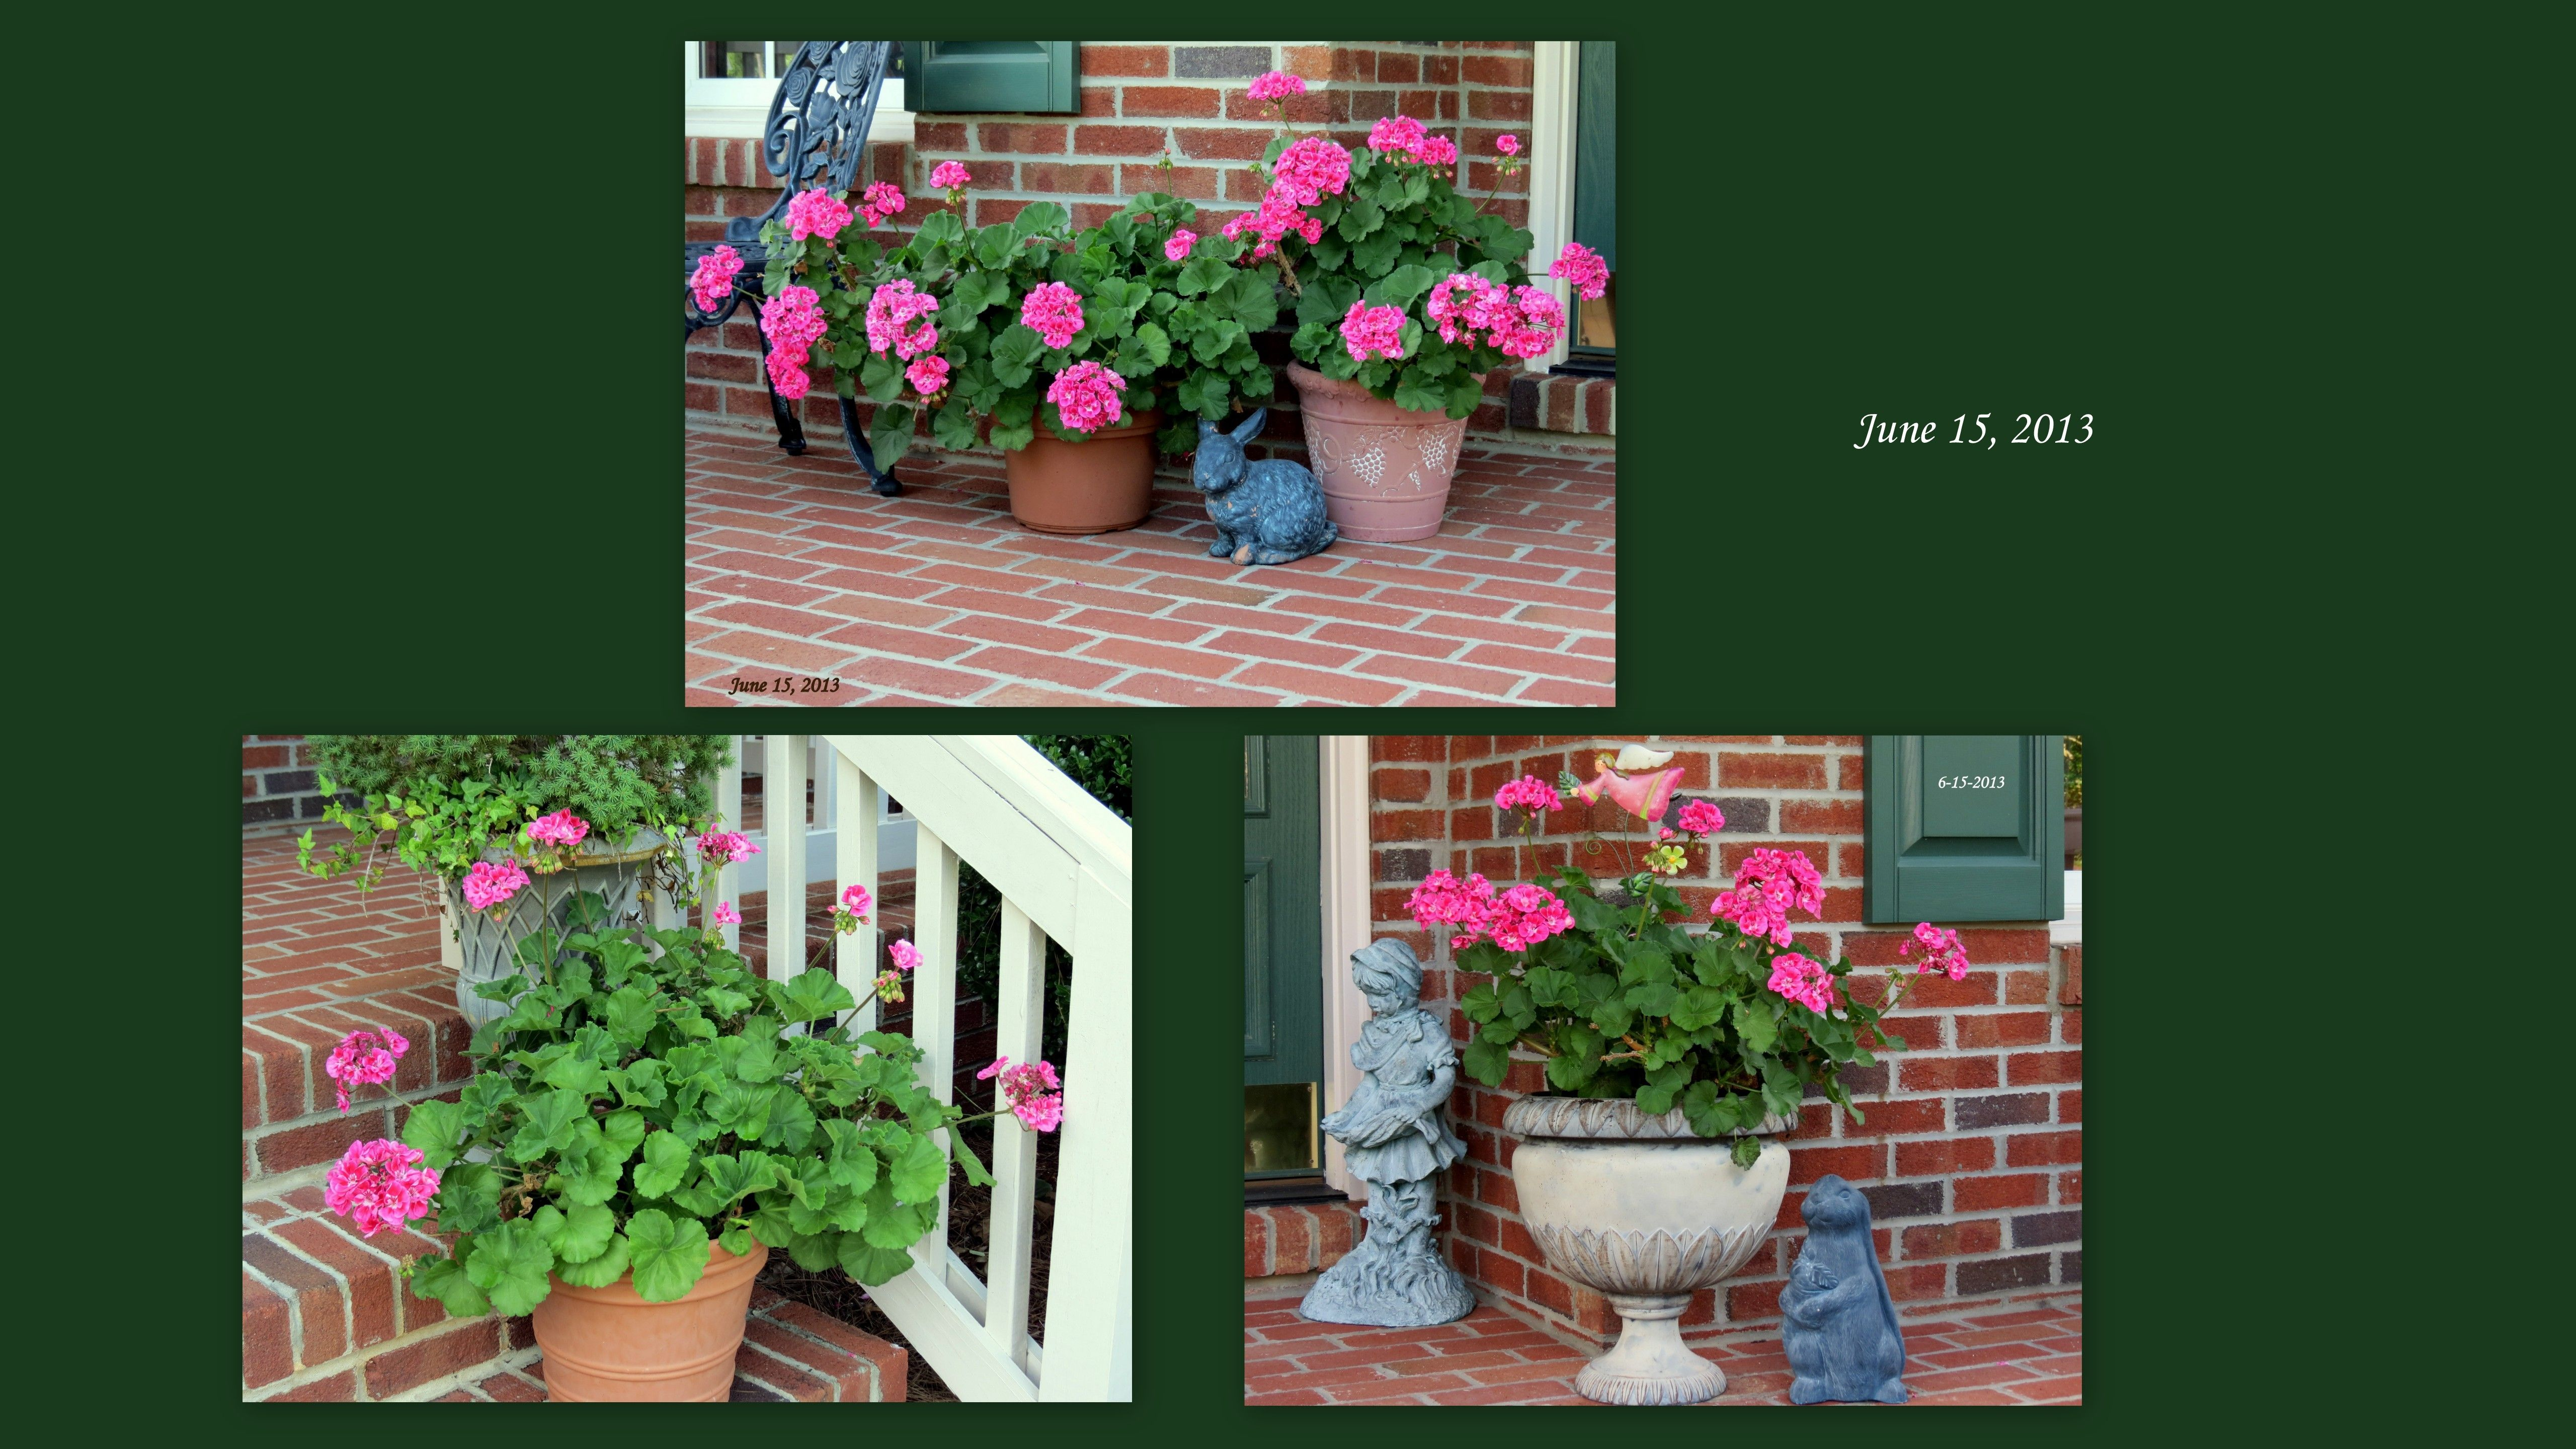 """All 6 of my plants """"Wintered"""" well, they are healthy and full of blooms!  This photo was taken on June 15, 2013"""